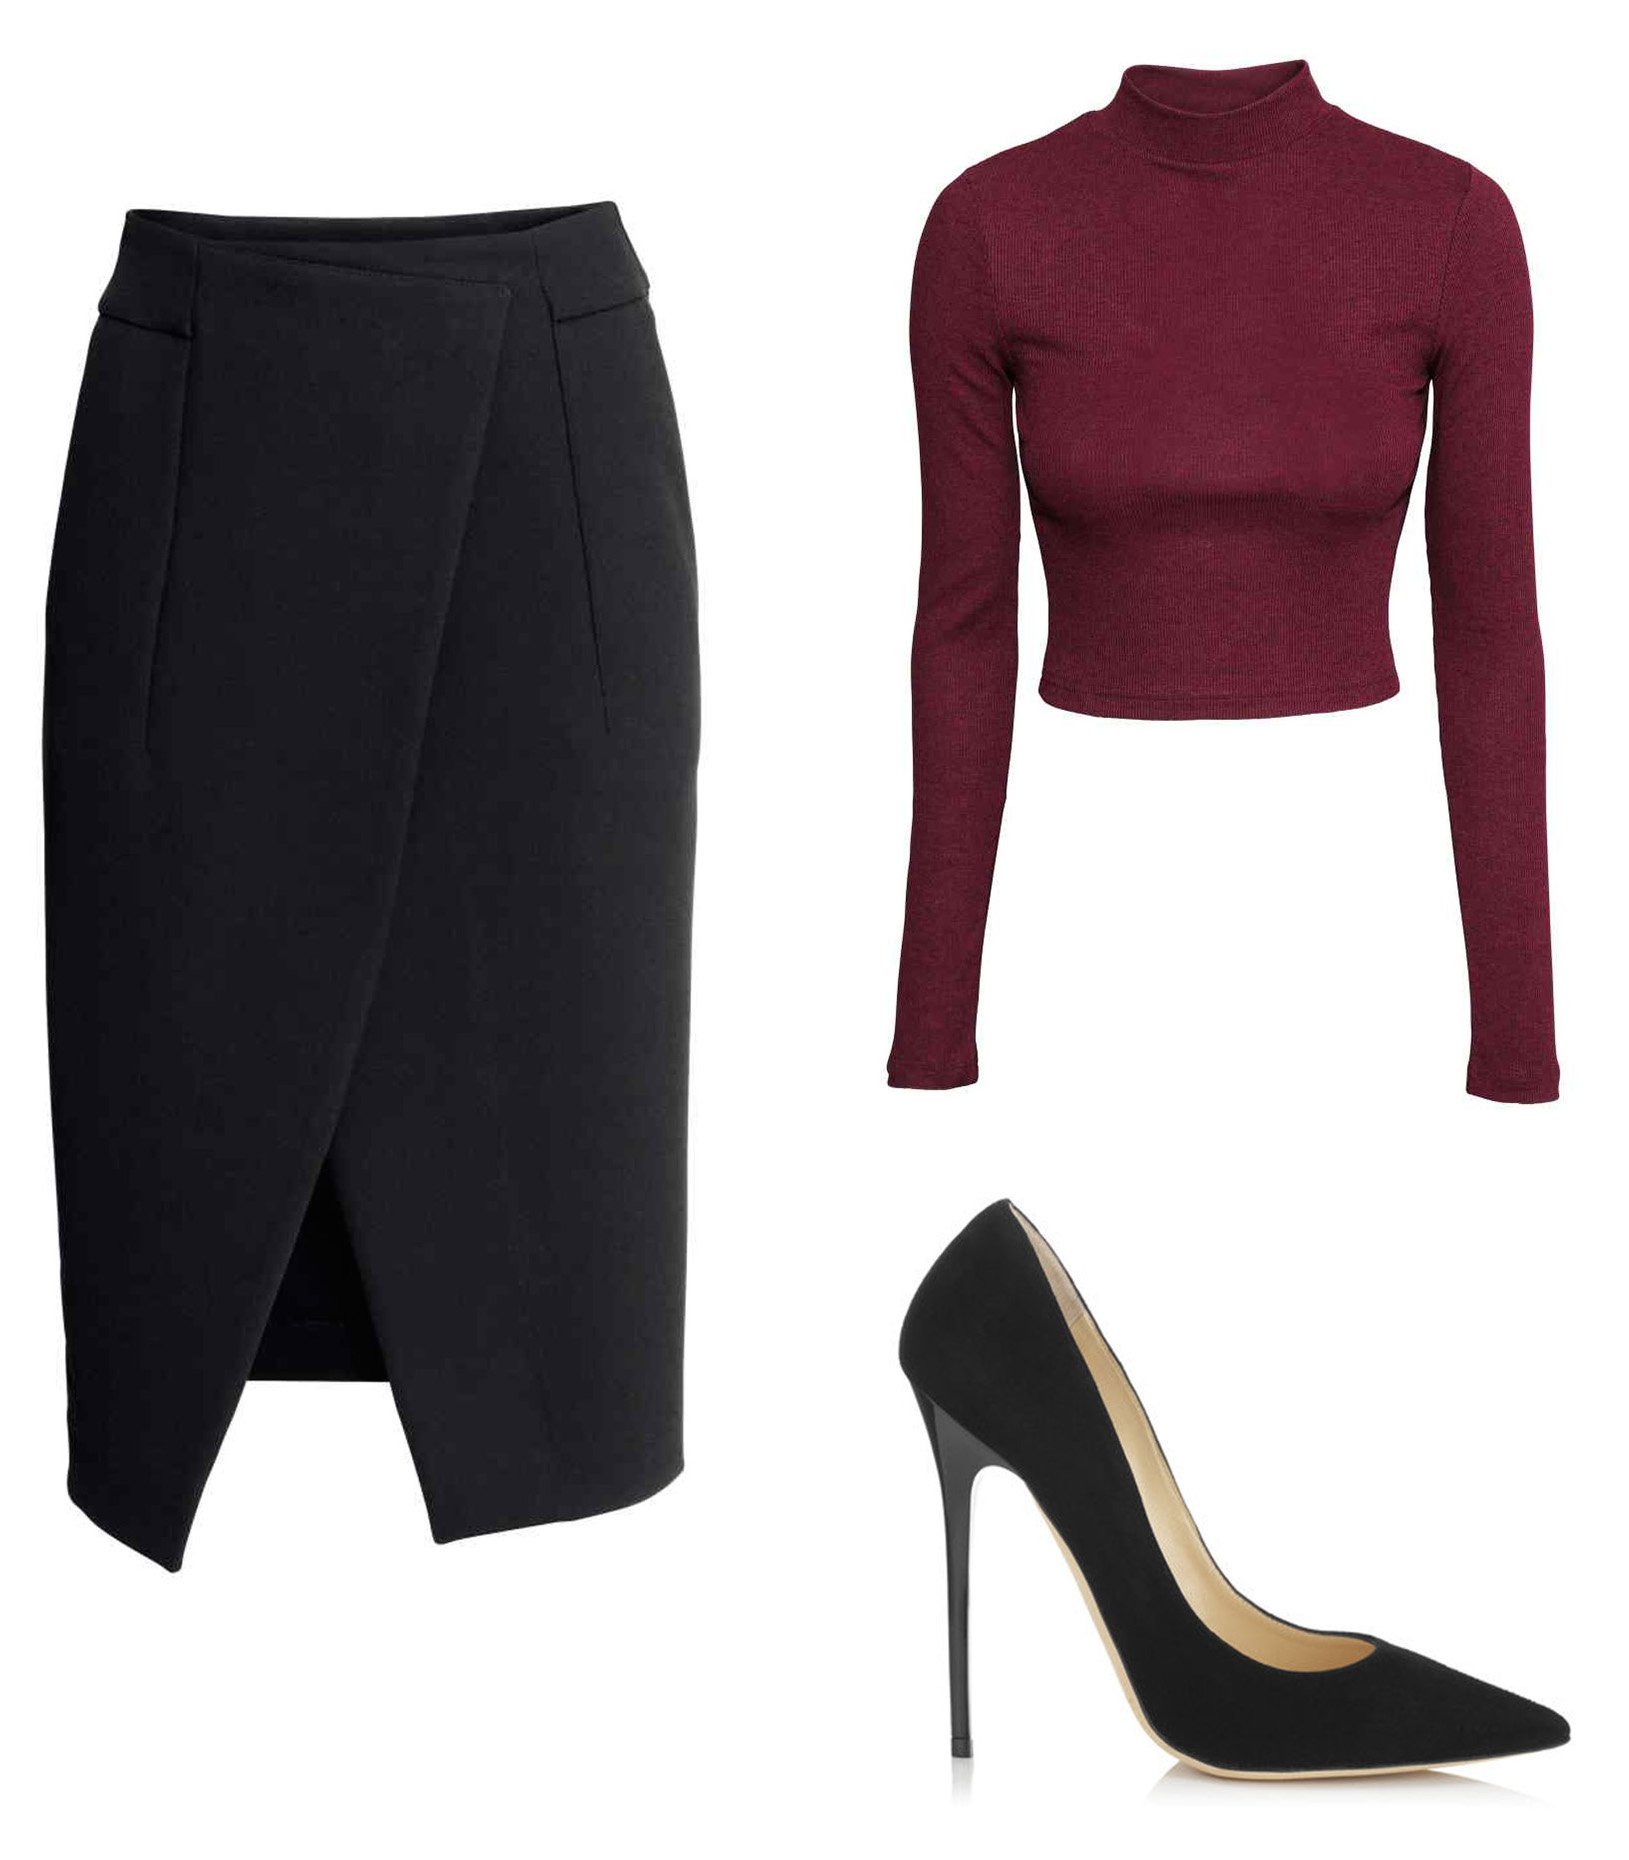 How to steal Kendall's style - Crop top & pencil skirt